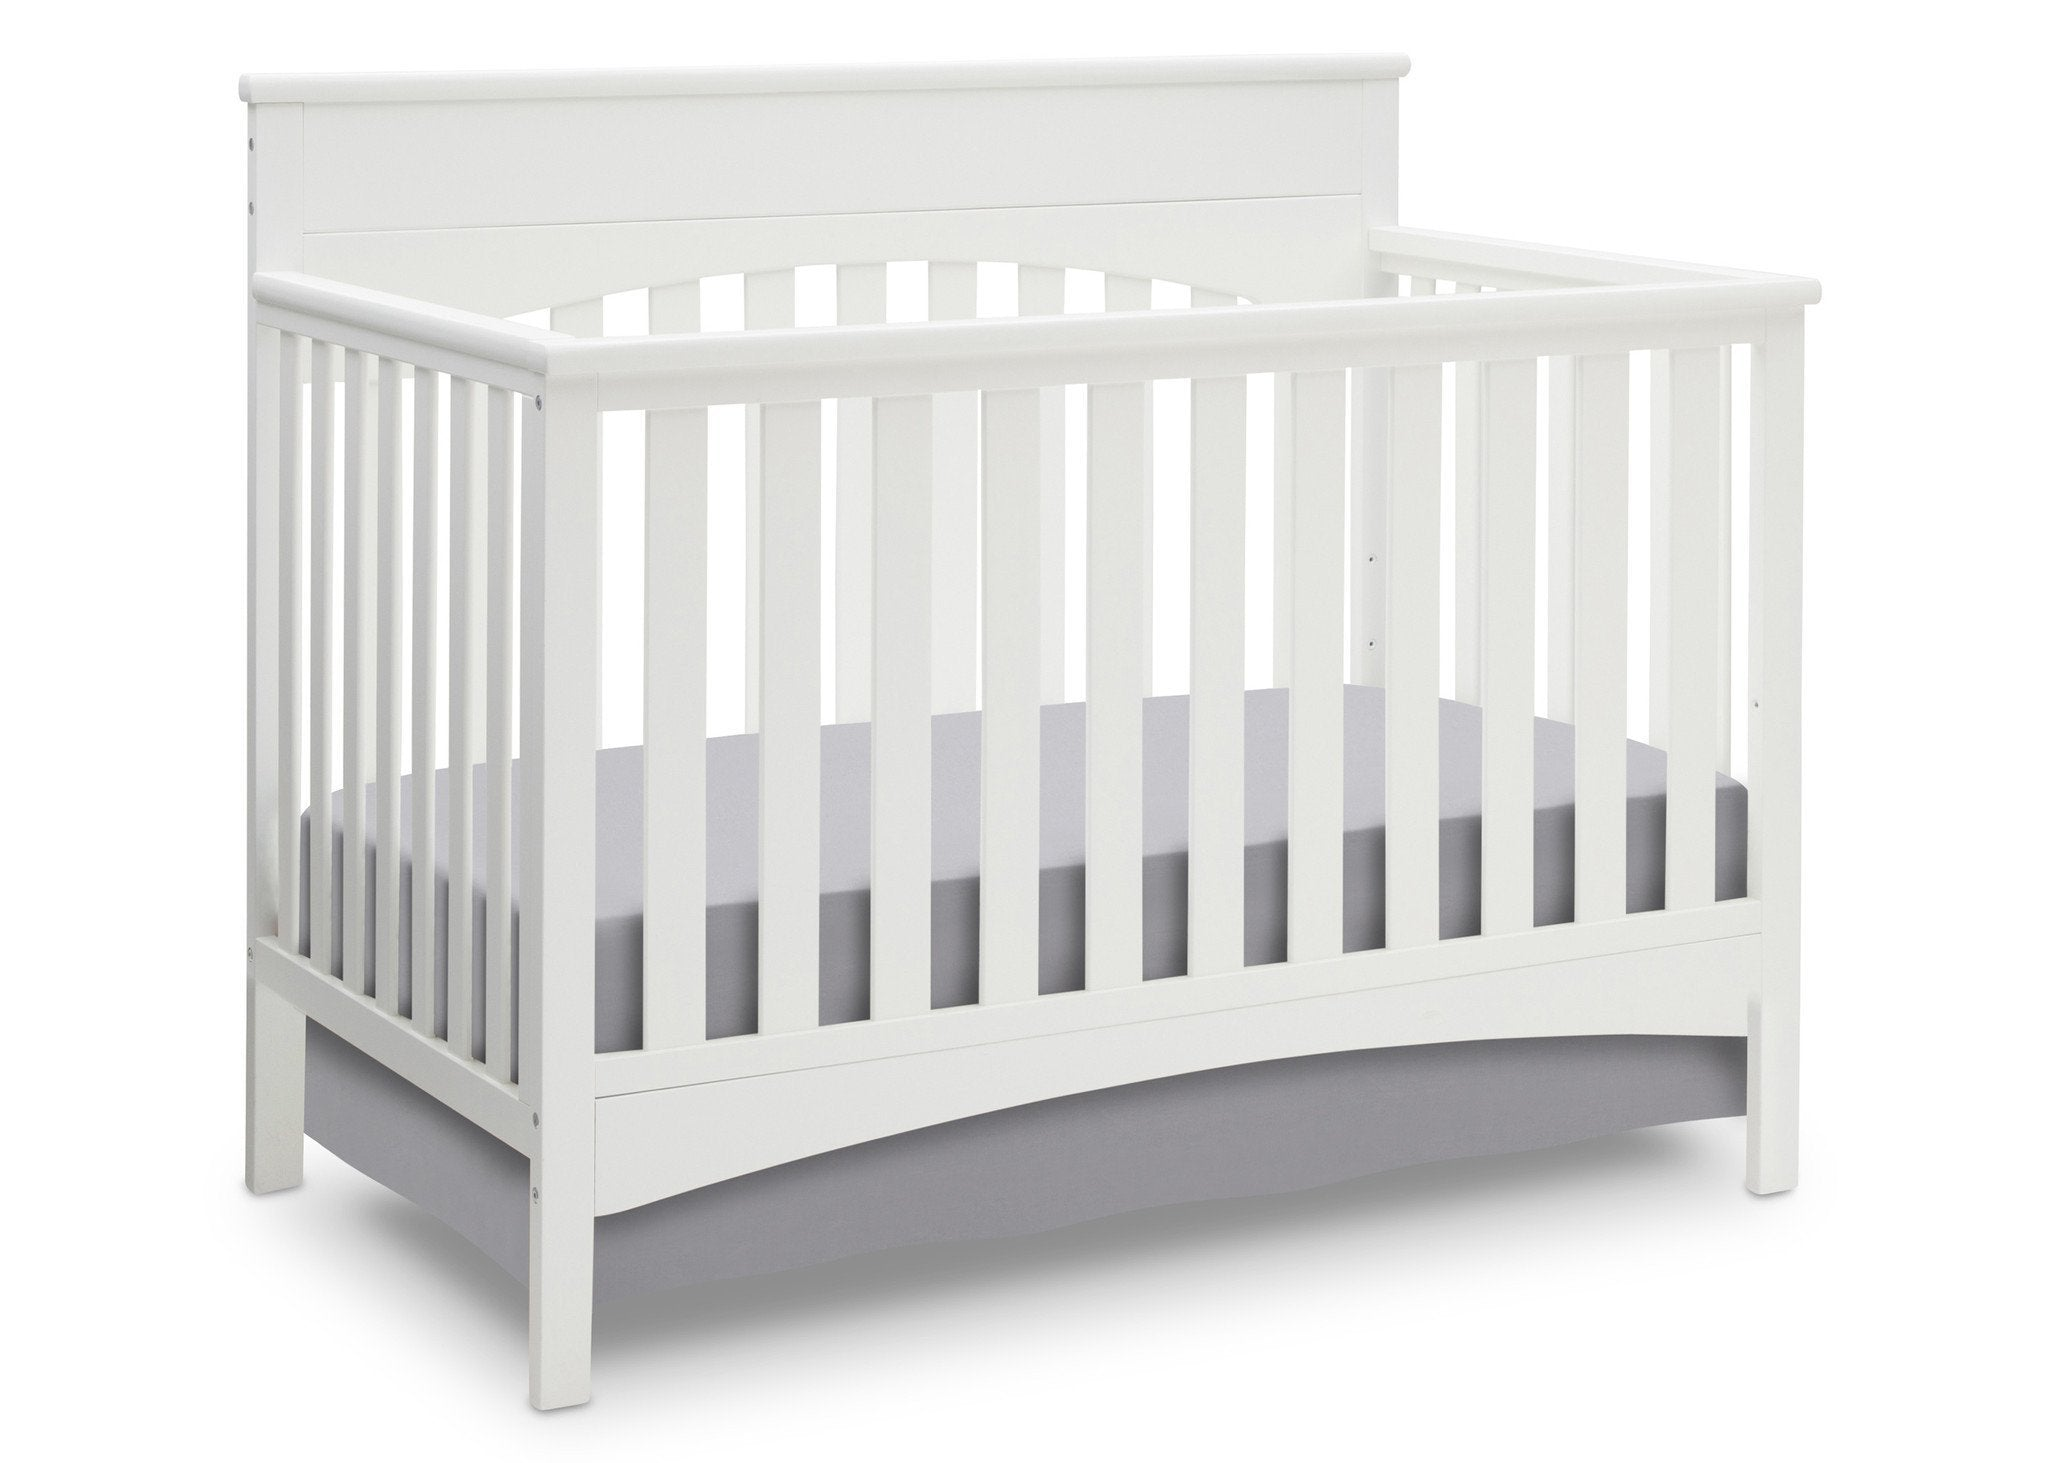 Delta Children White Ambiance (108) Bennington Lifestyle 4-in-1 Crib, Crib Conversion a3a